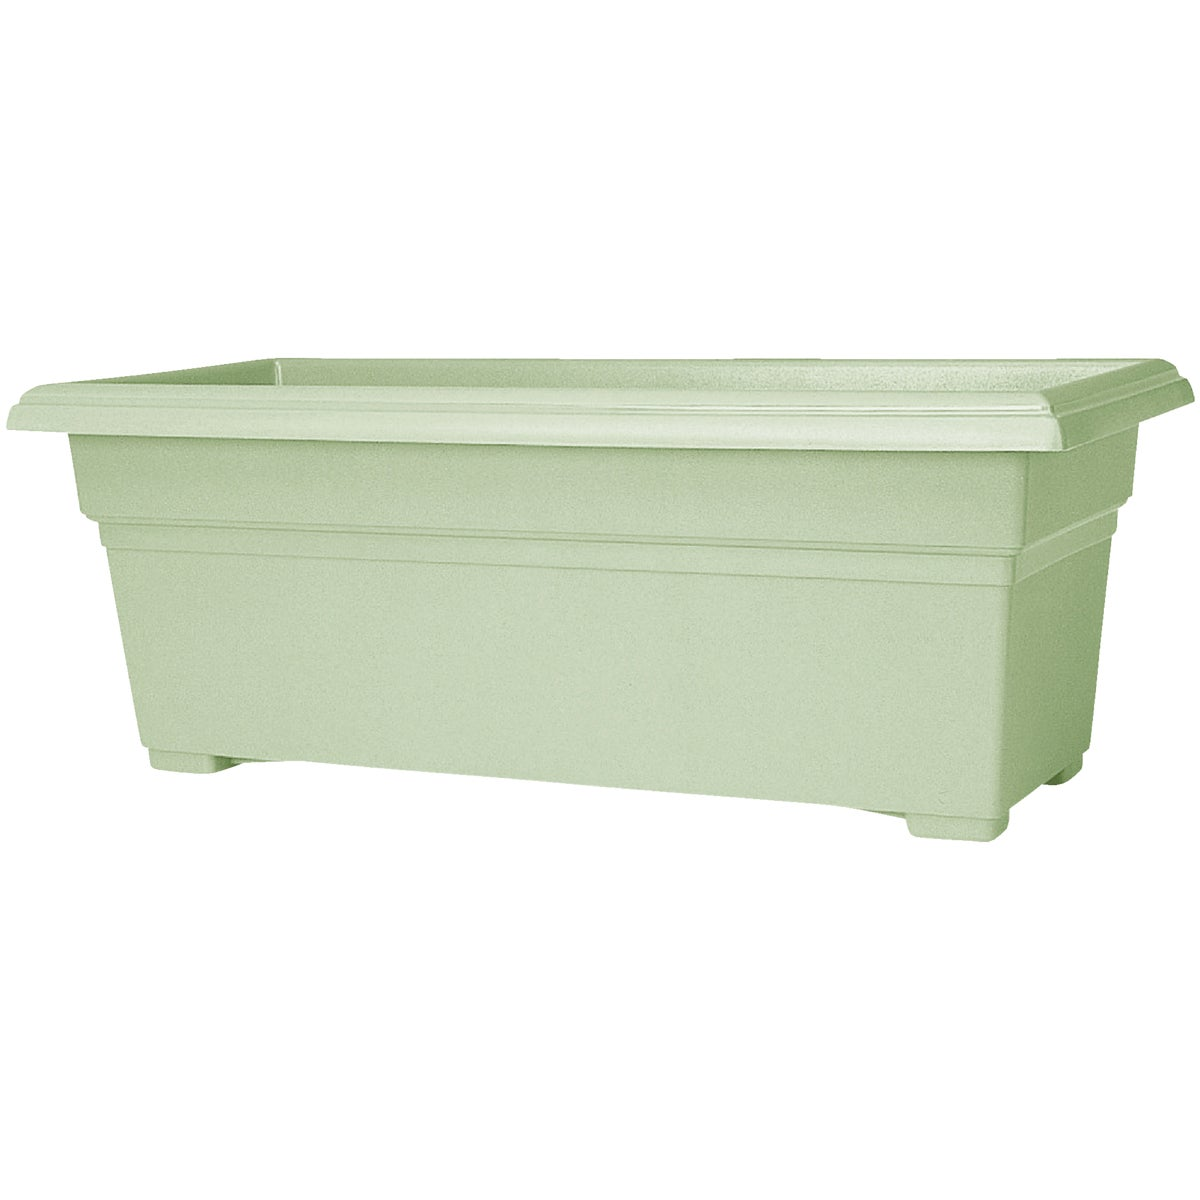 "24"" POLY FLOWER BOX - 1624 by Novelty Mfg Co"